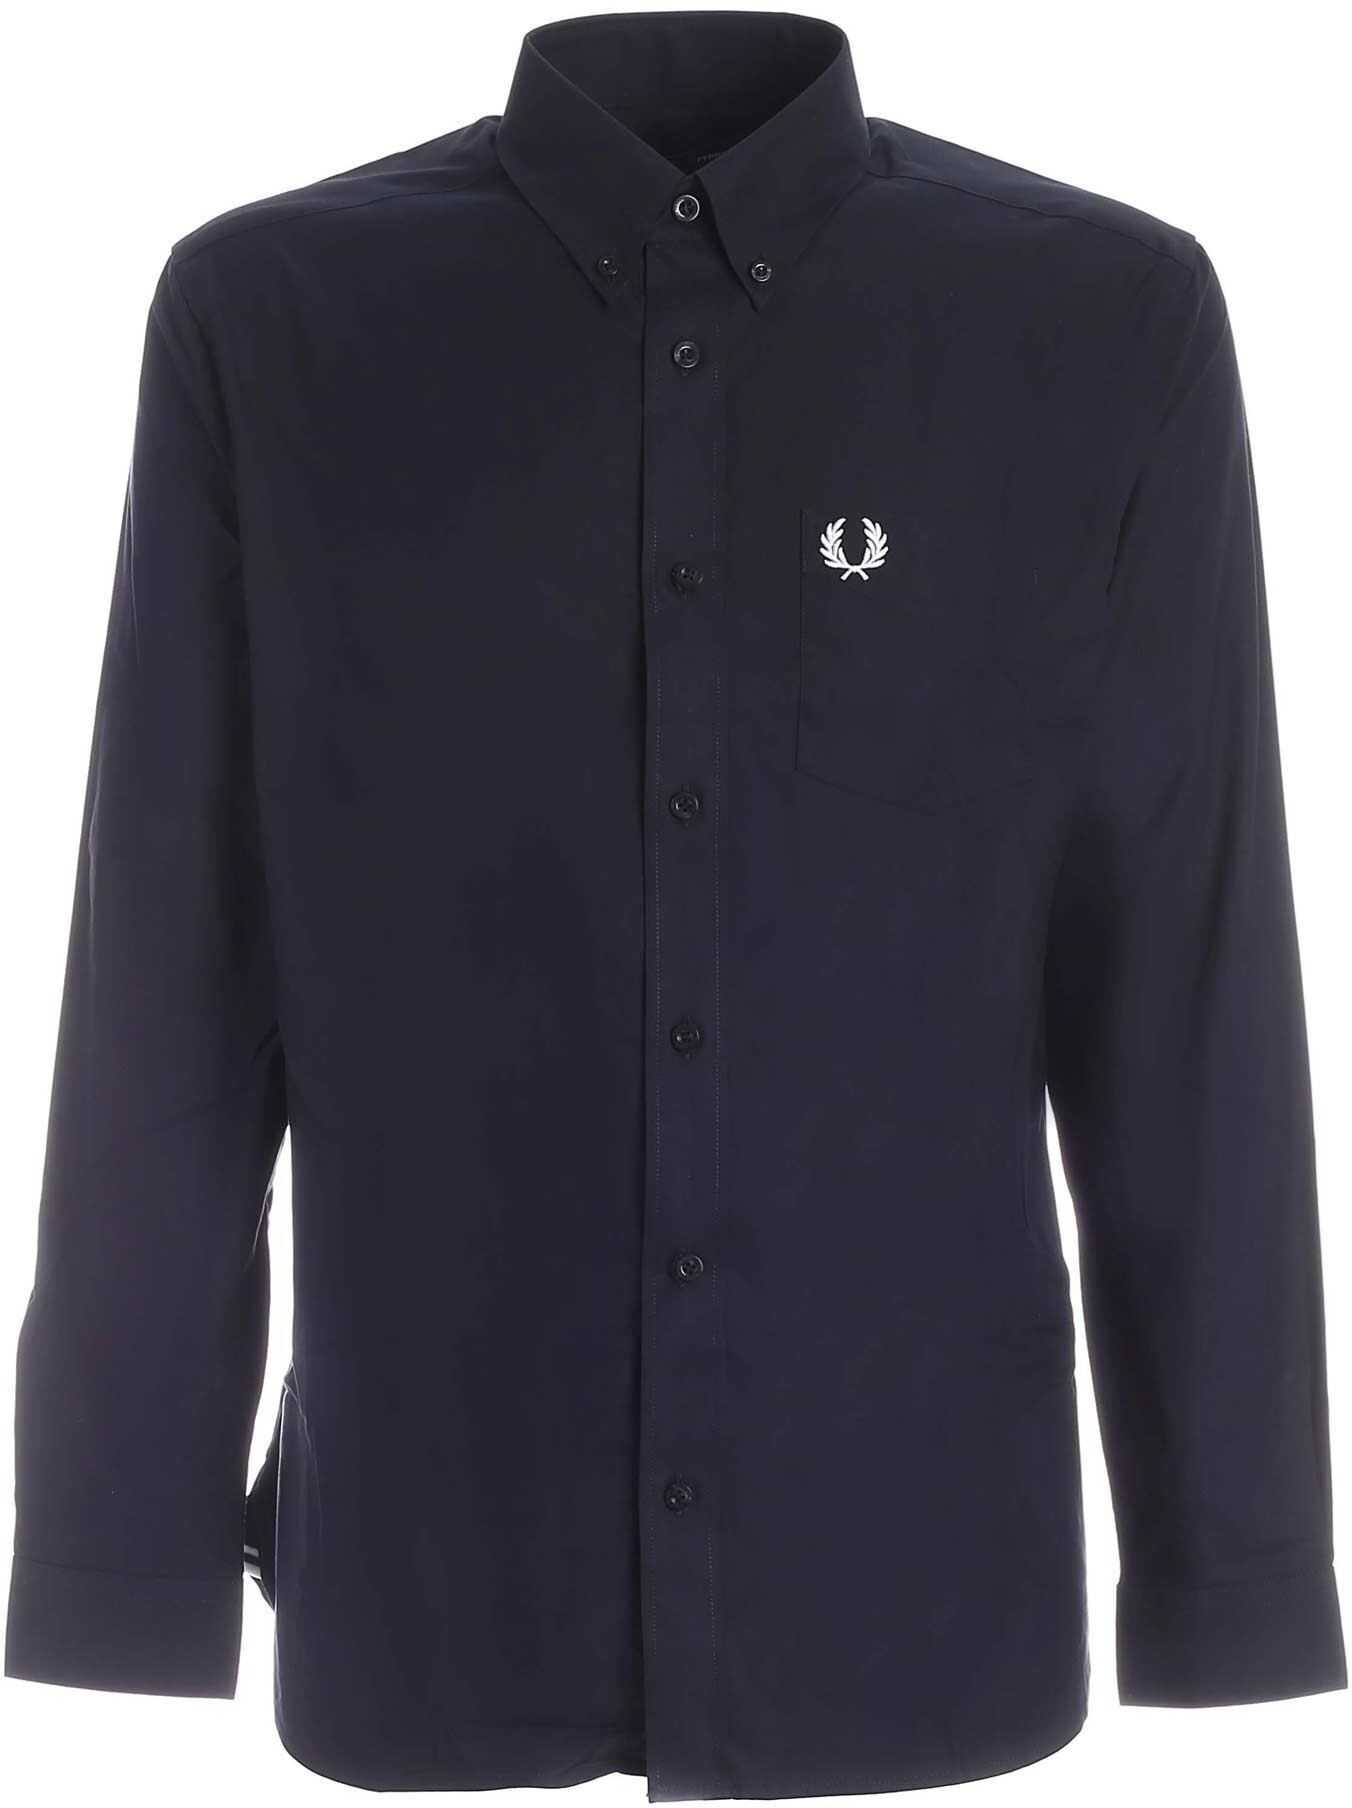 Fred Perry Logo Embroidery Button Down Shirt In Blue Blue imagine